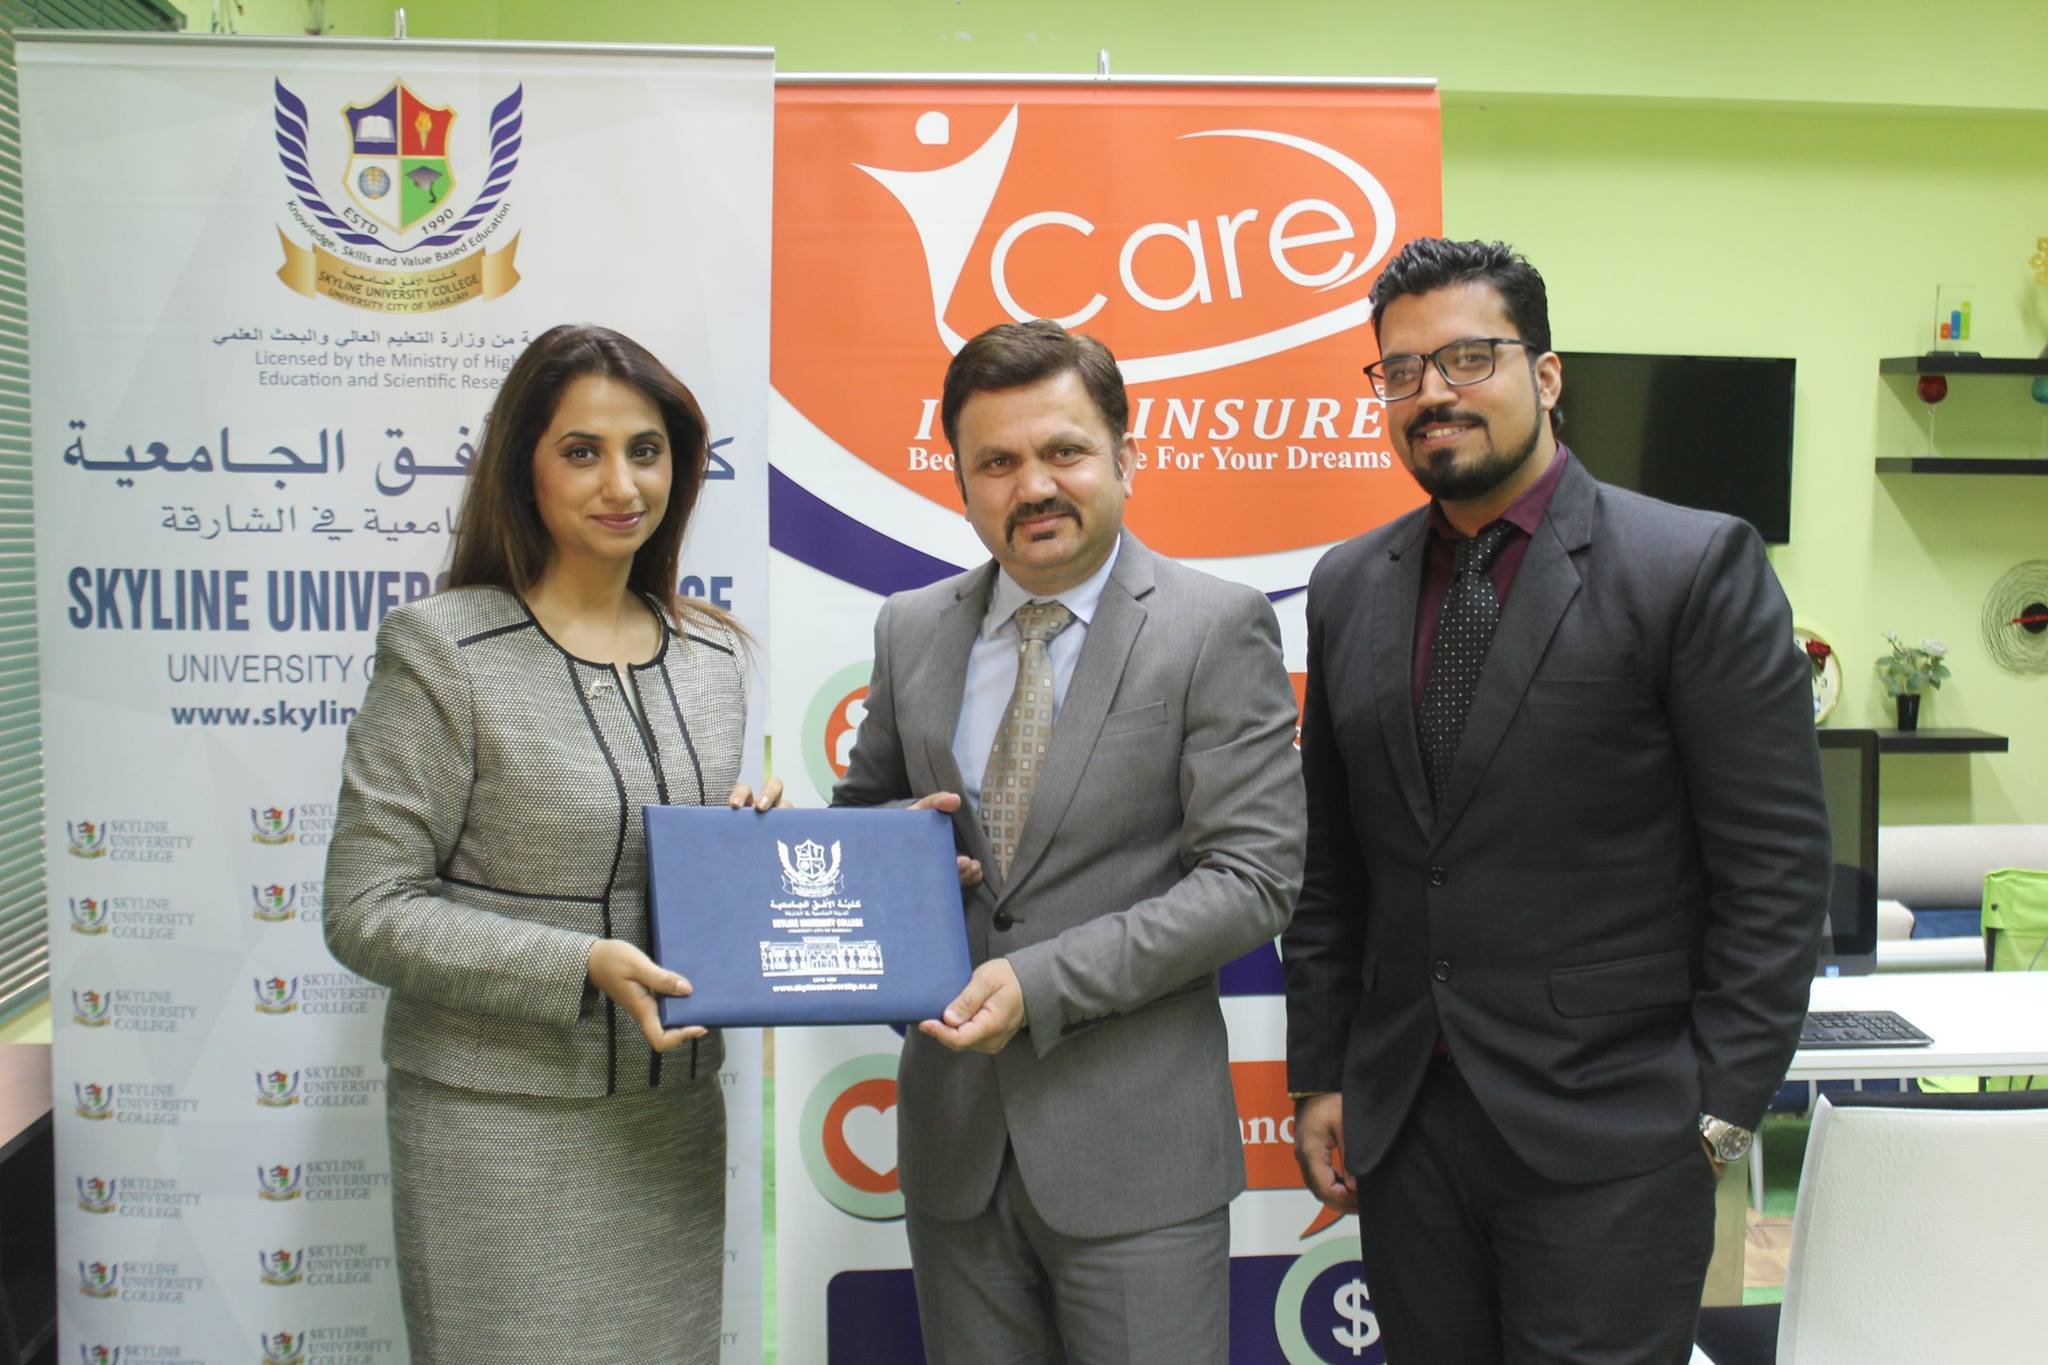 MOU with IcareInsure